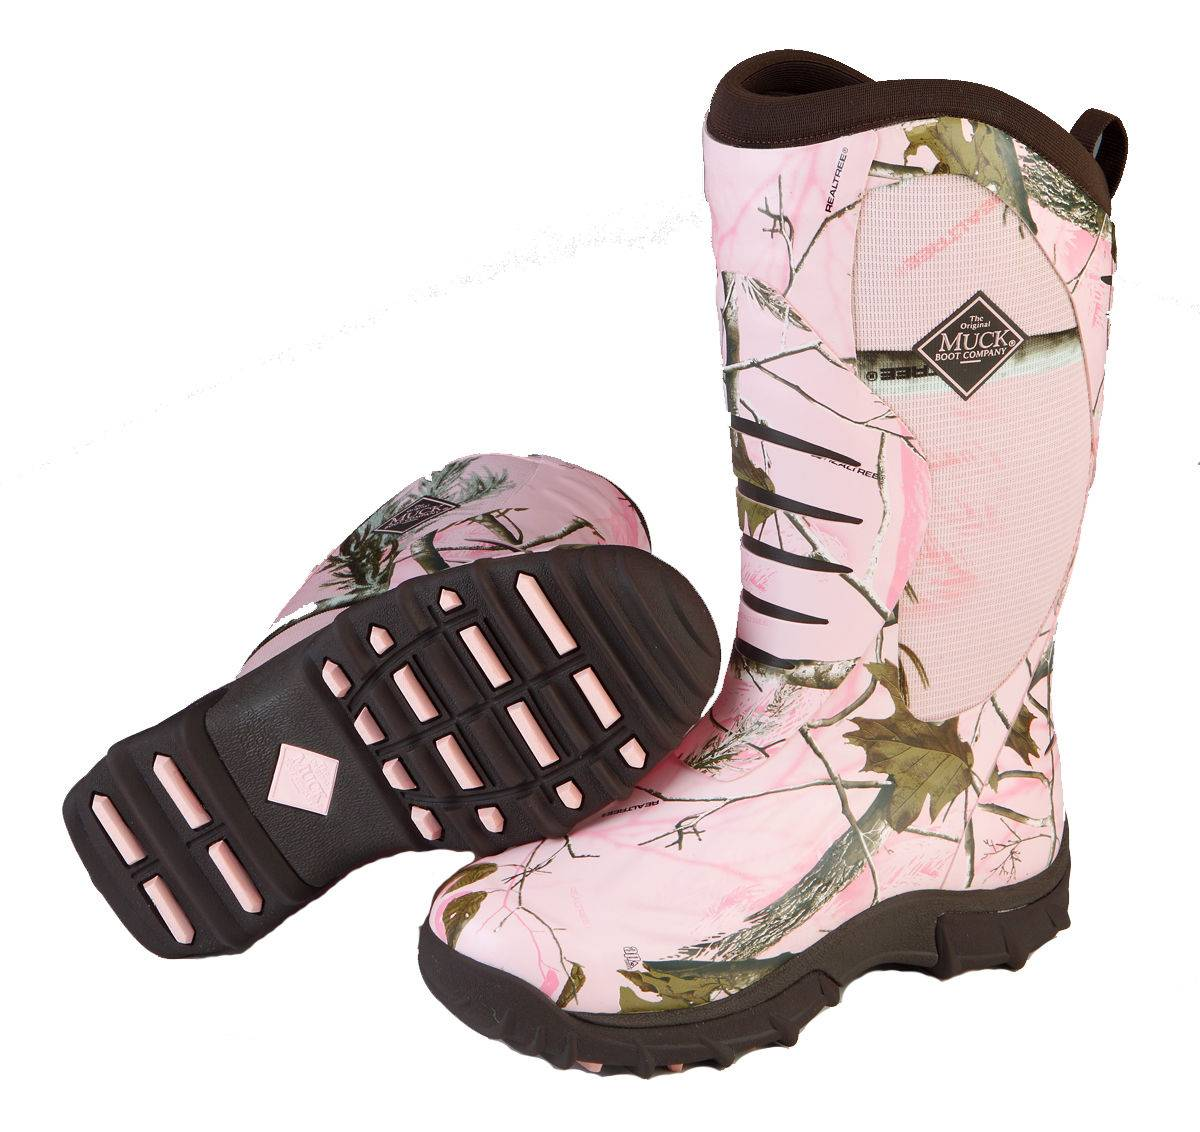 Muck Boots Women's Pursuit Stealth - Pink Realtree